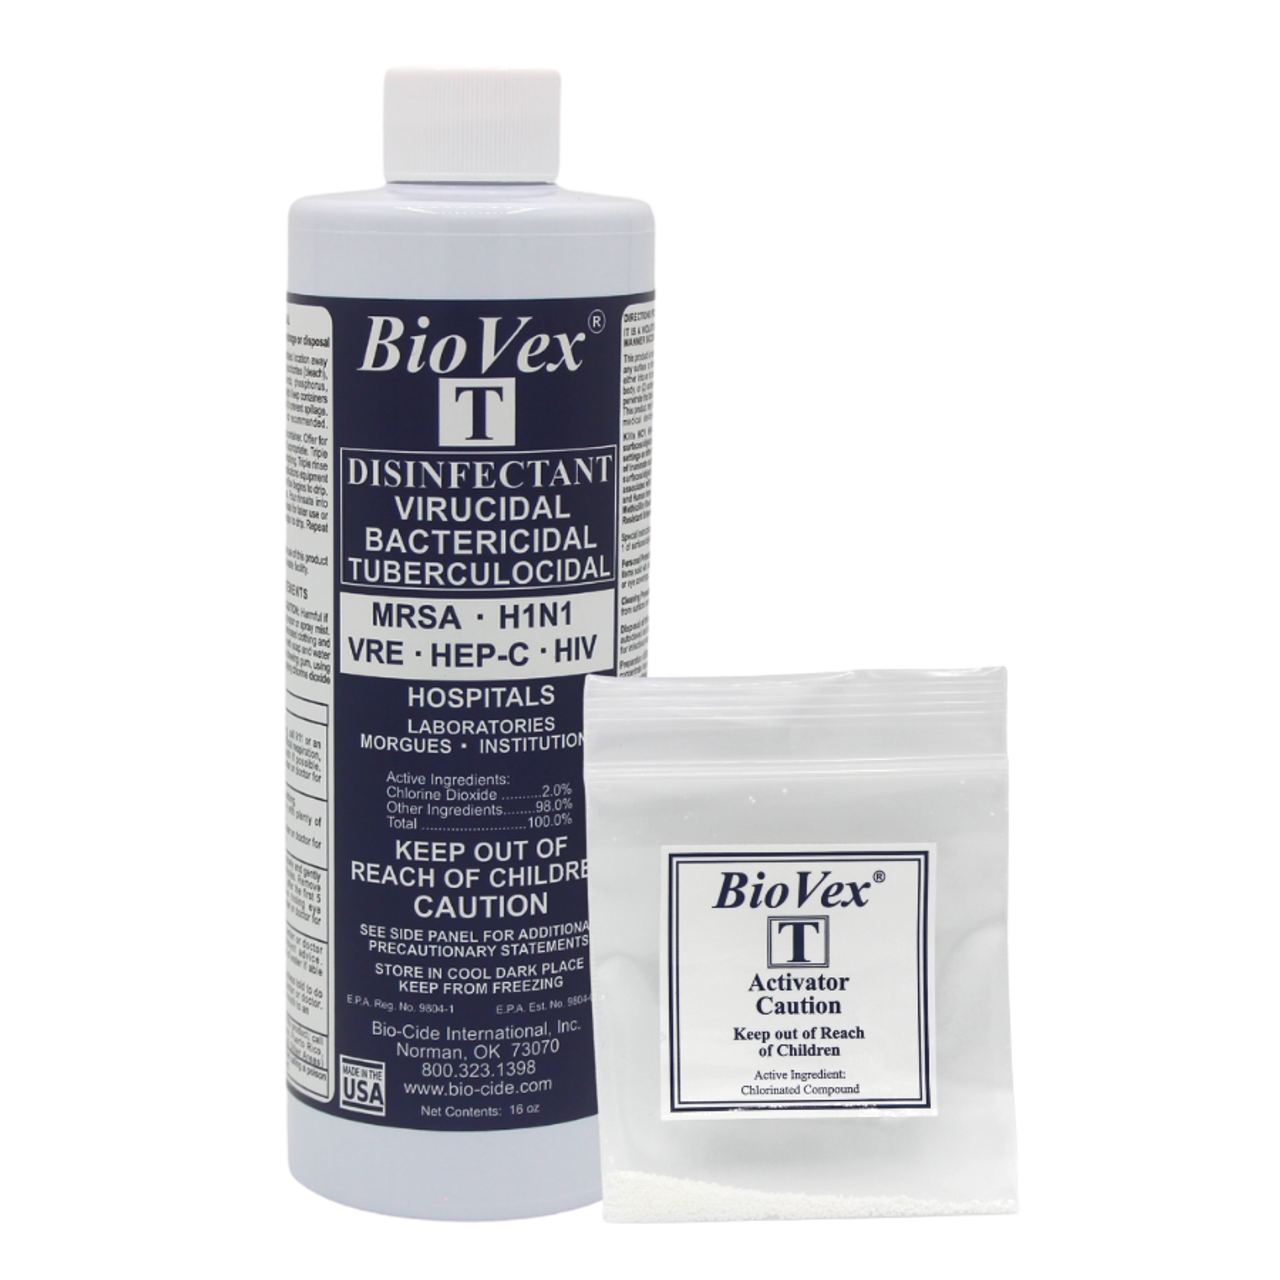 BioVex T (Chlorine Dioxide): EPA Approved COVID-19 Disinfectant